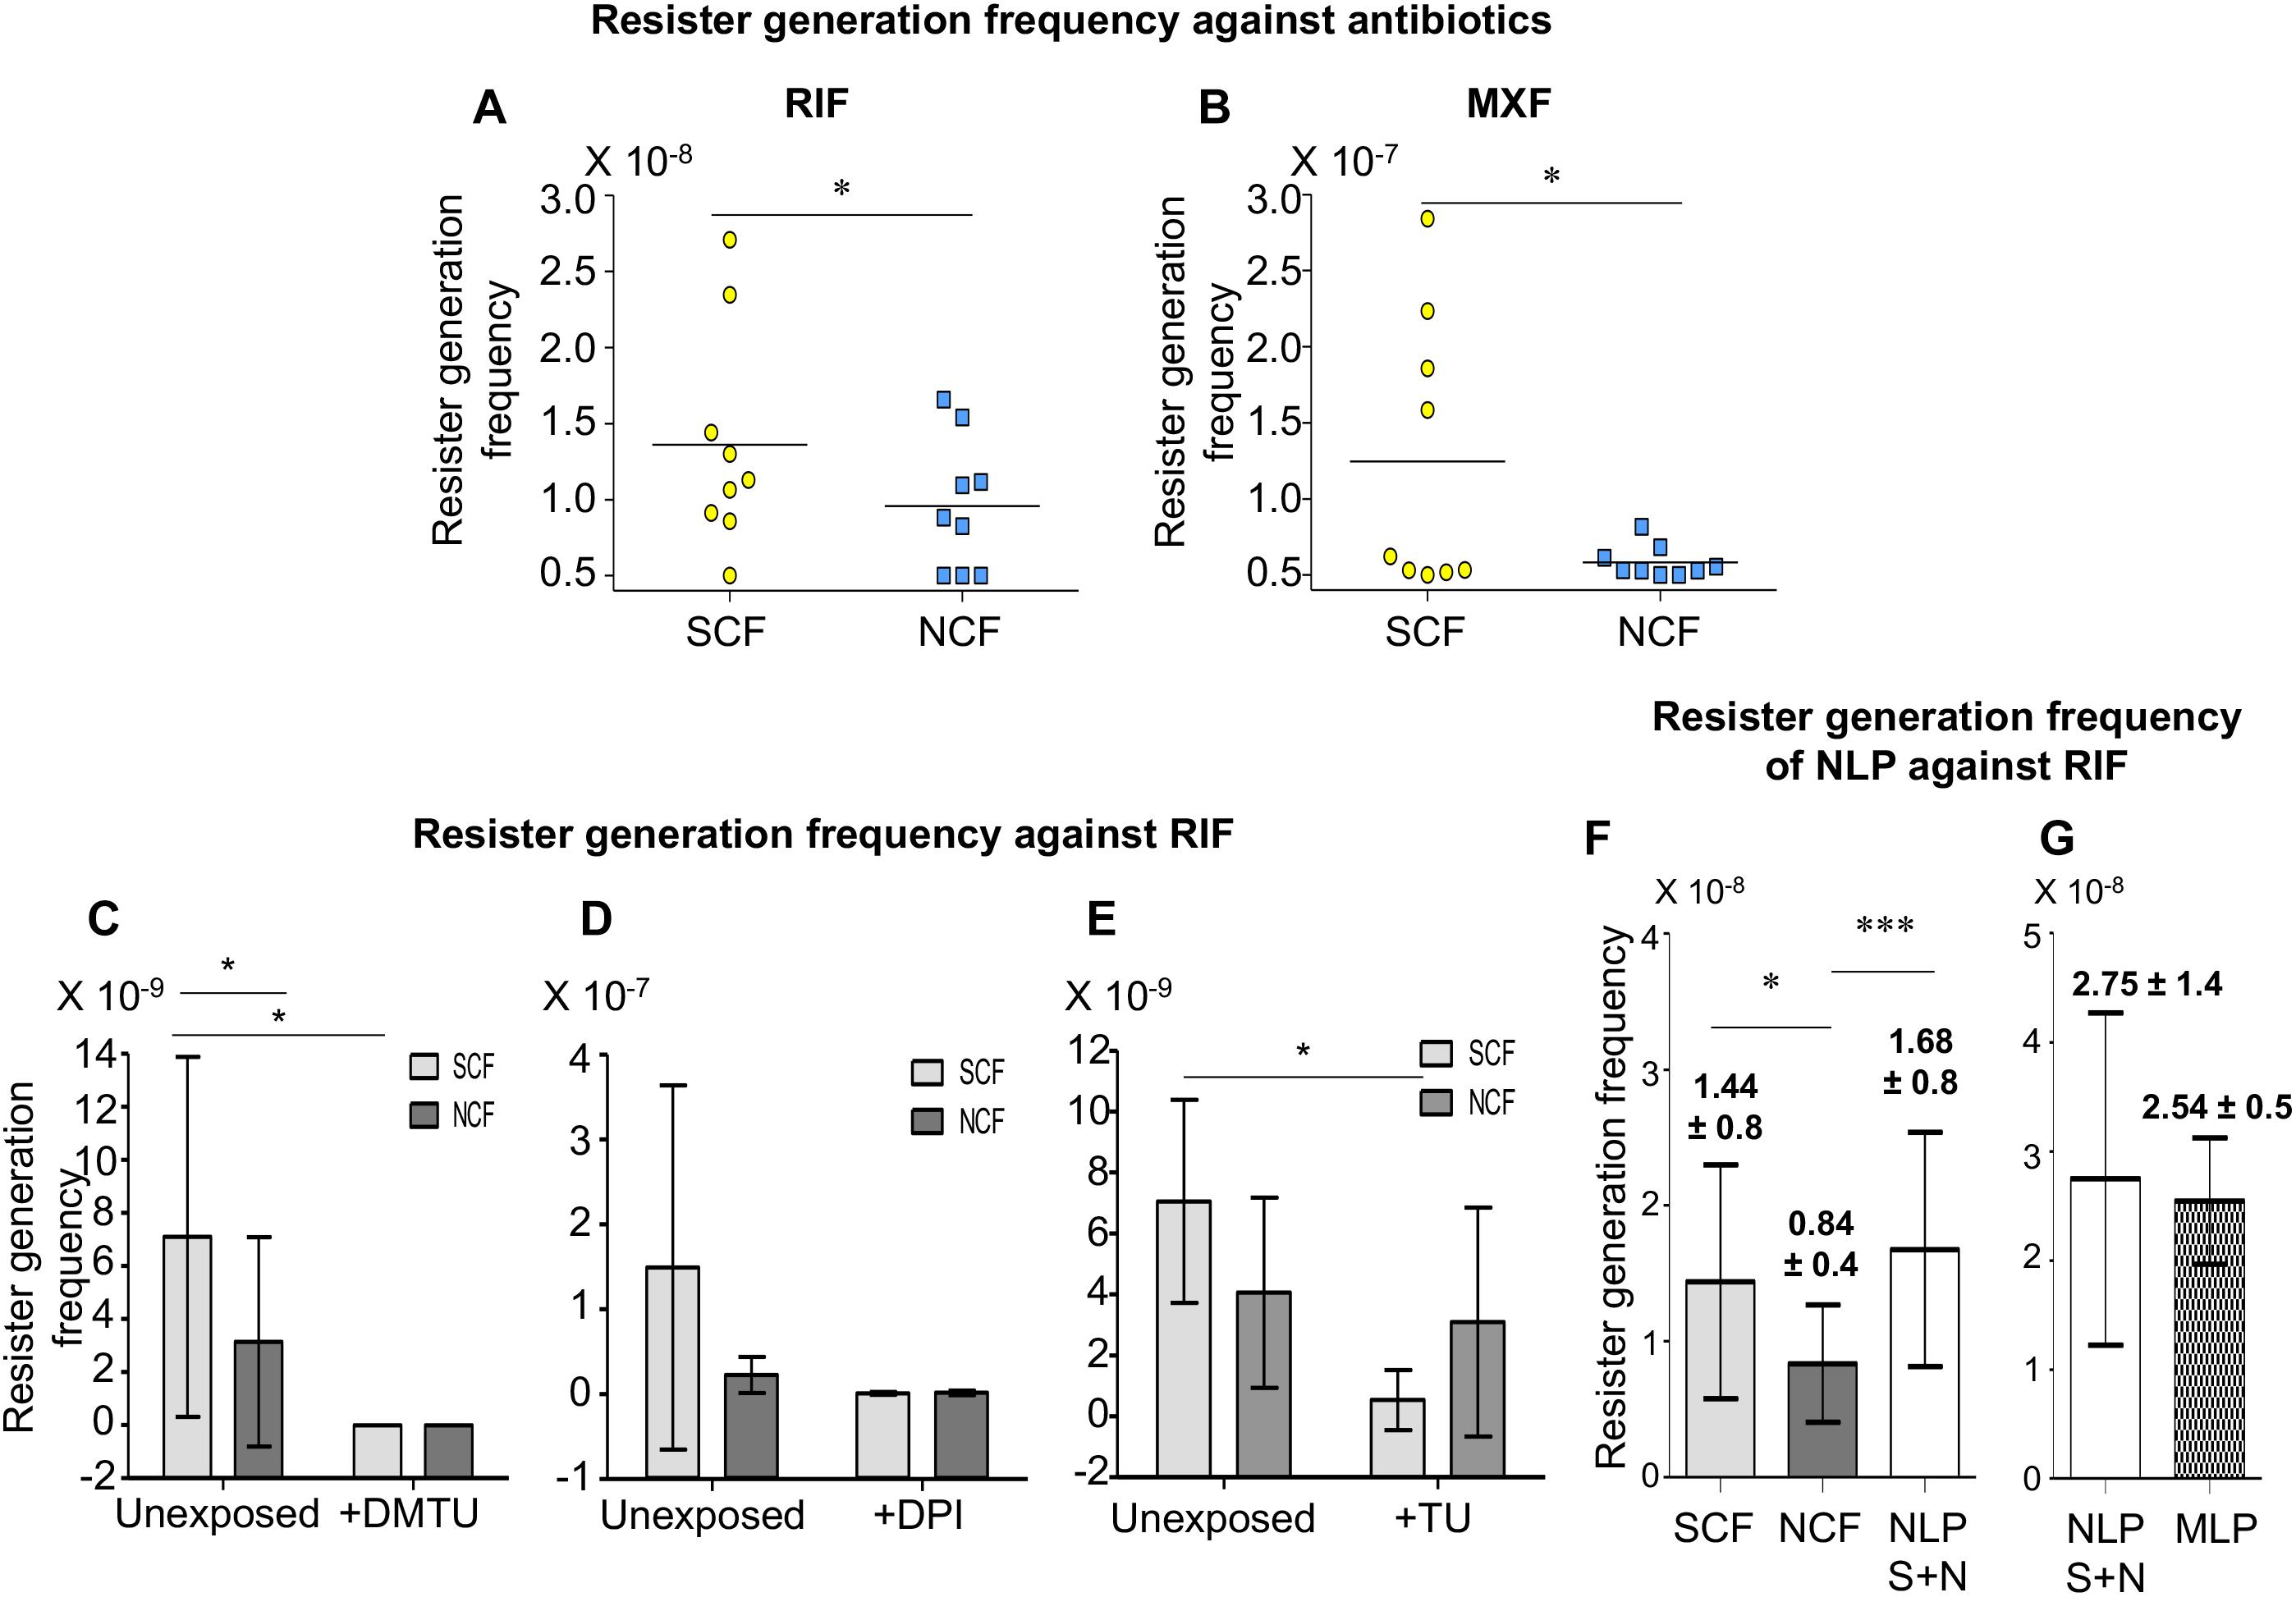 Frontiers | A Minor Subpopulation of Mycobacteria Inherently